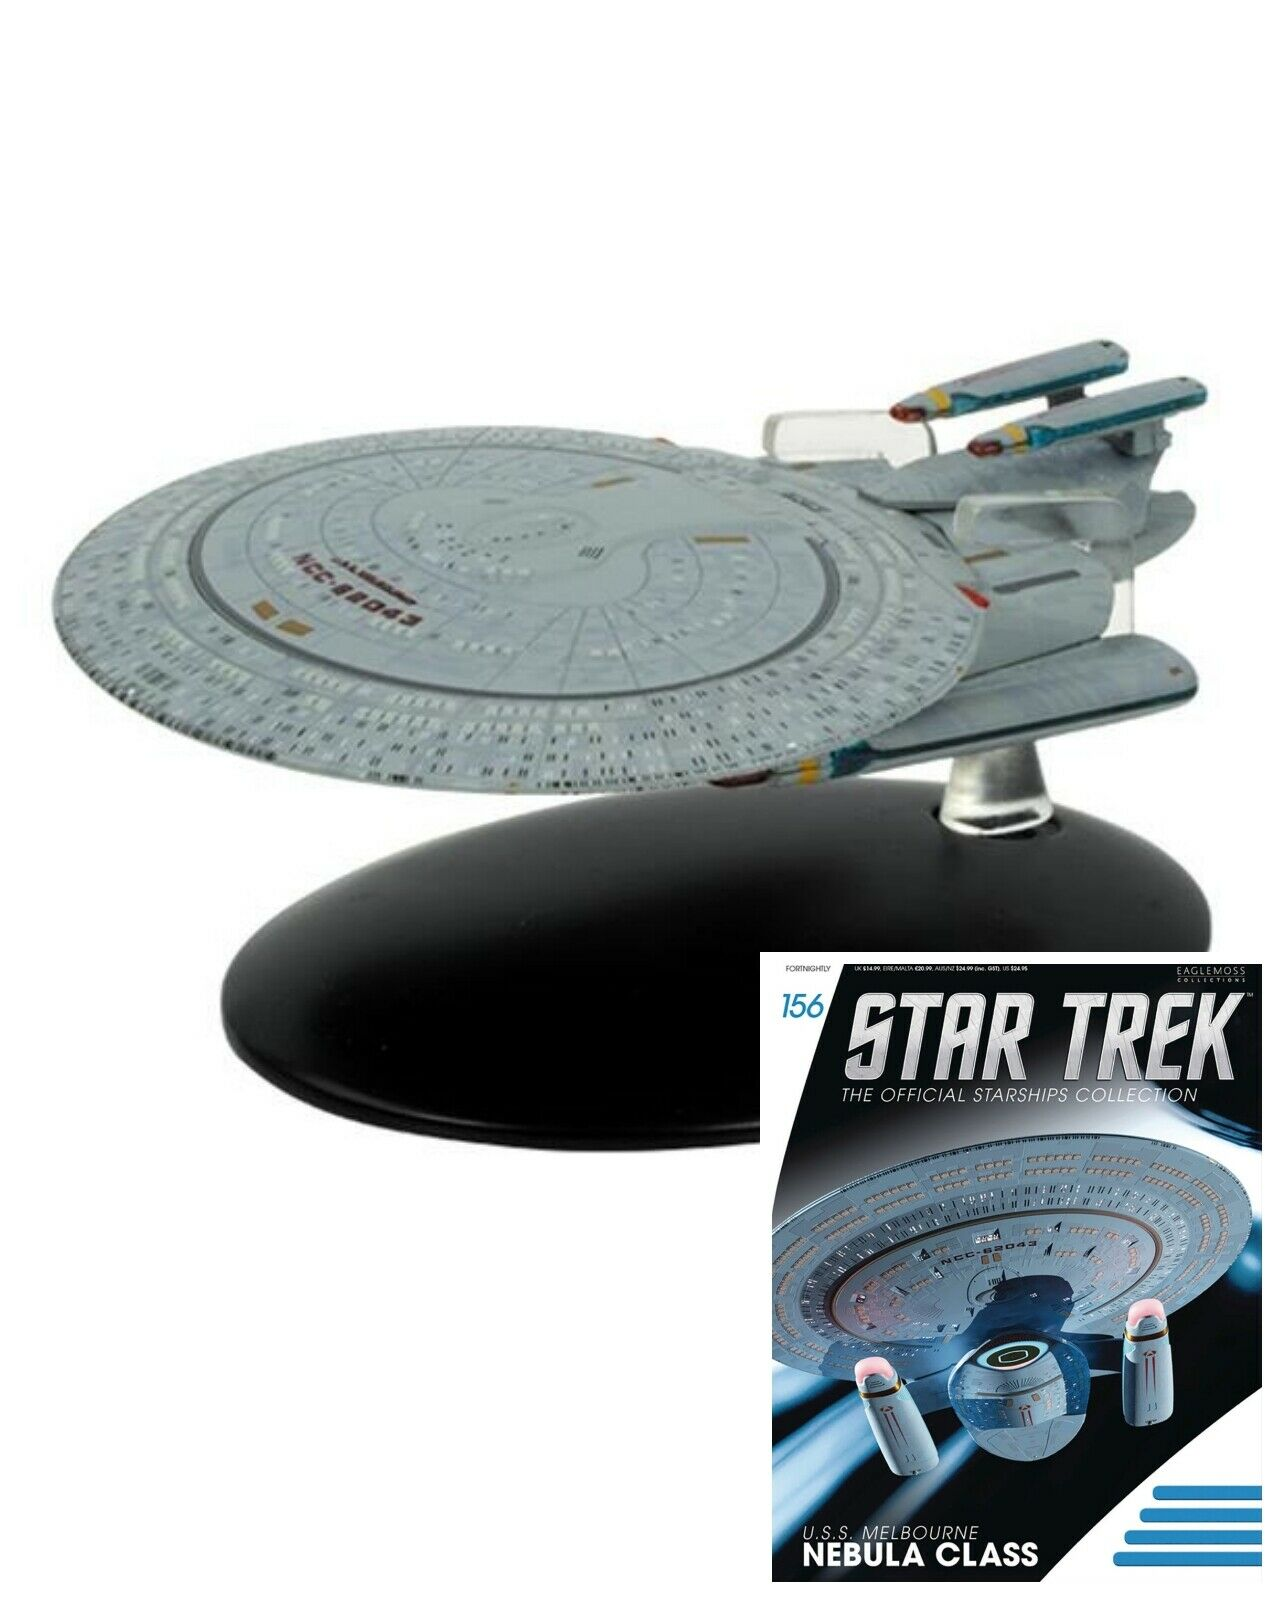 Issue 156: USS Melbourne (Nebula Class) Starship